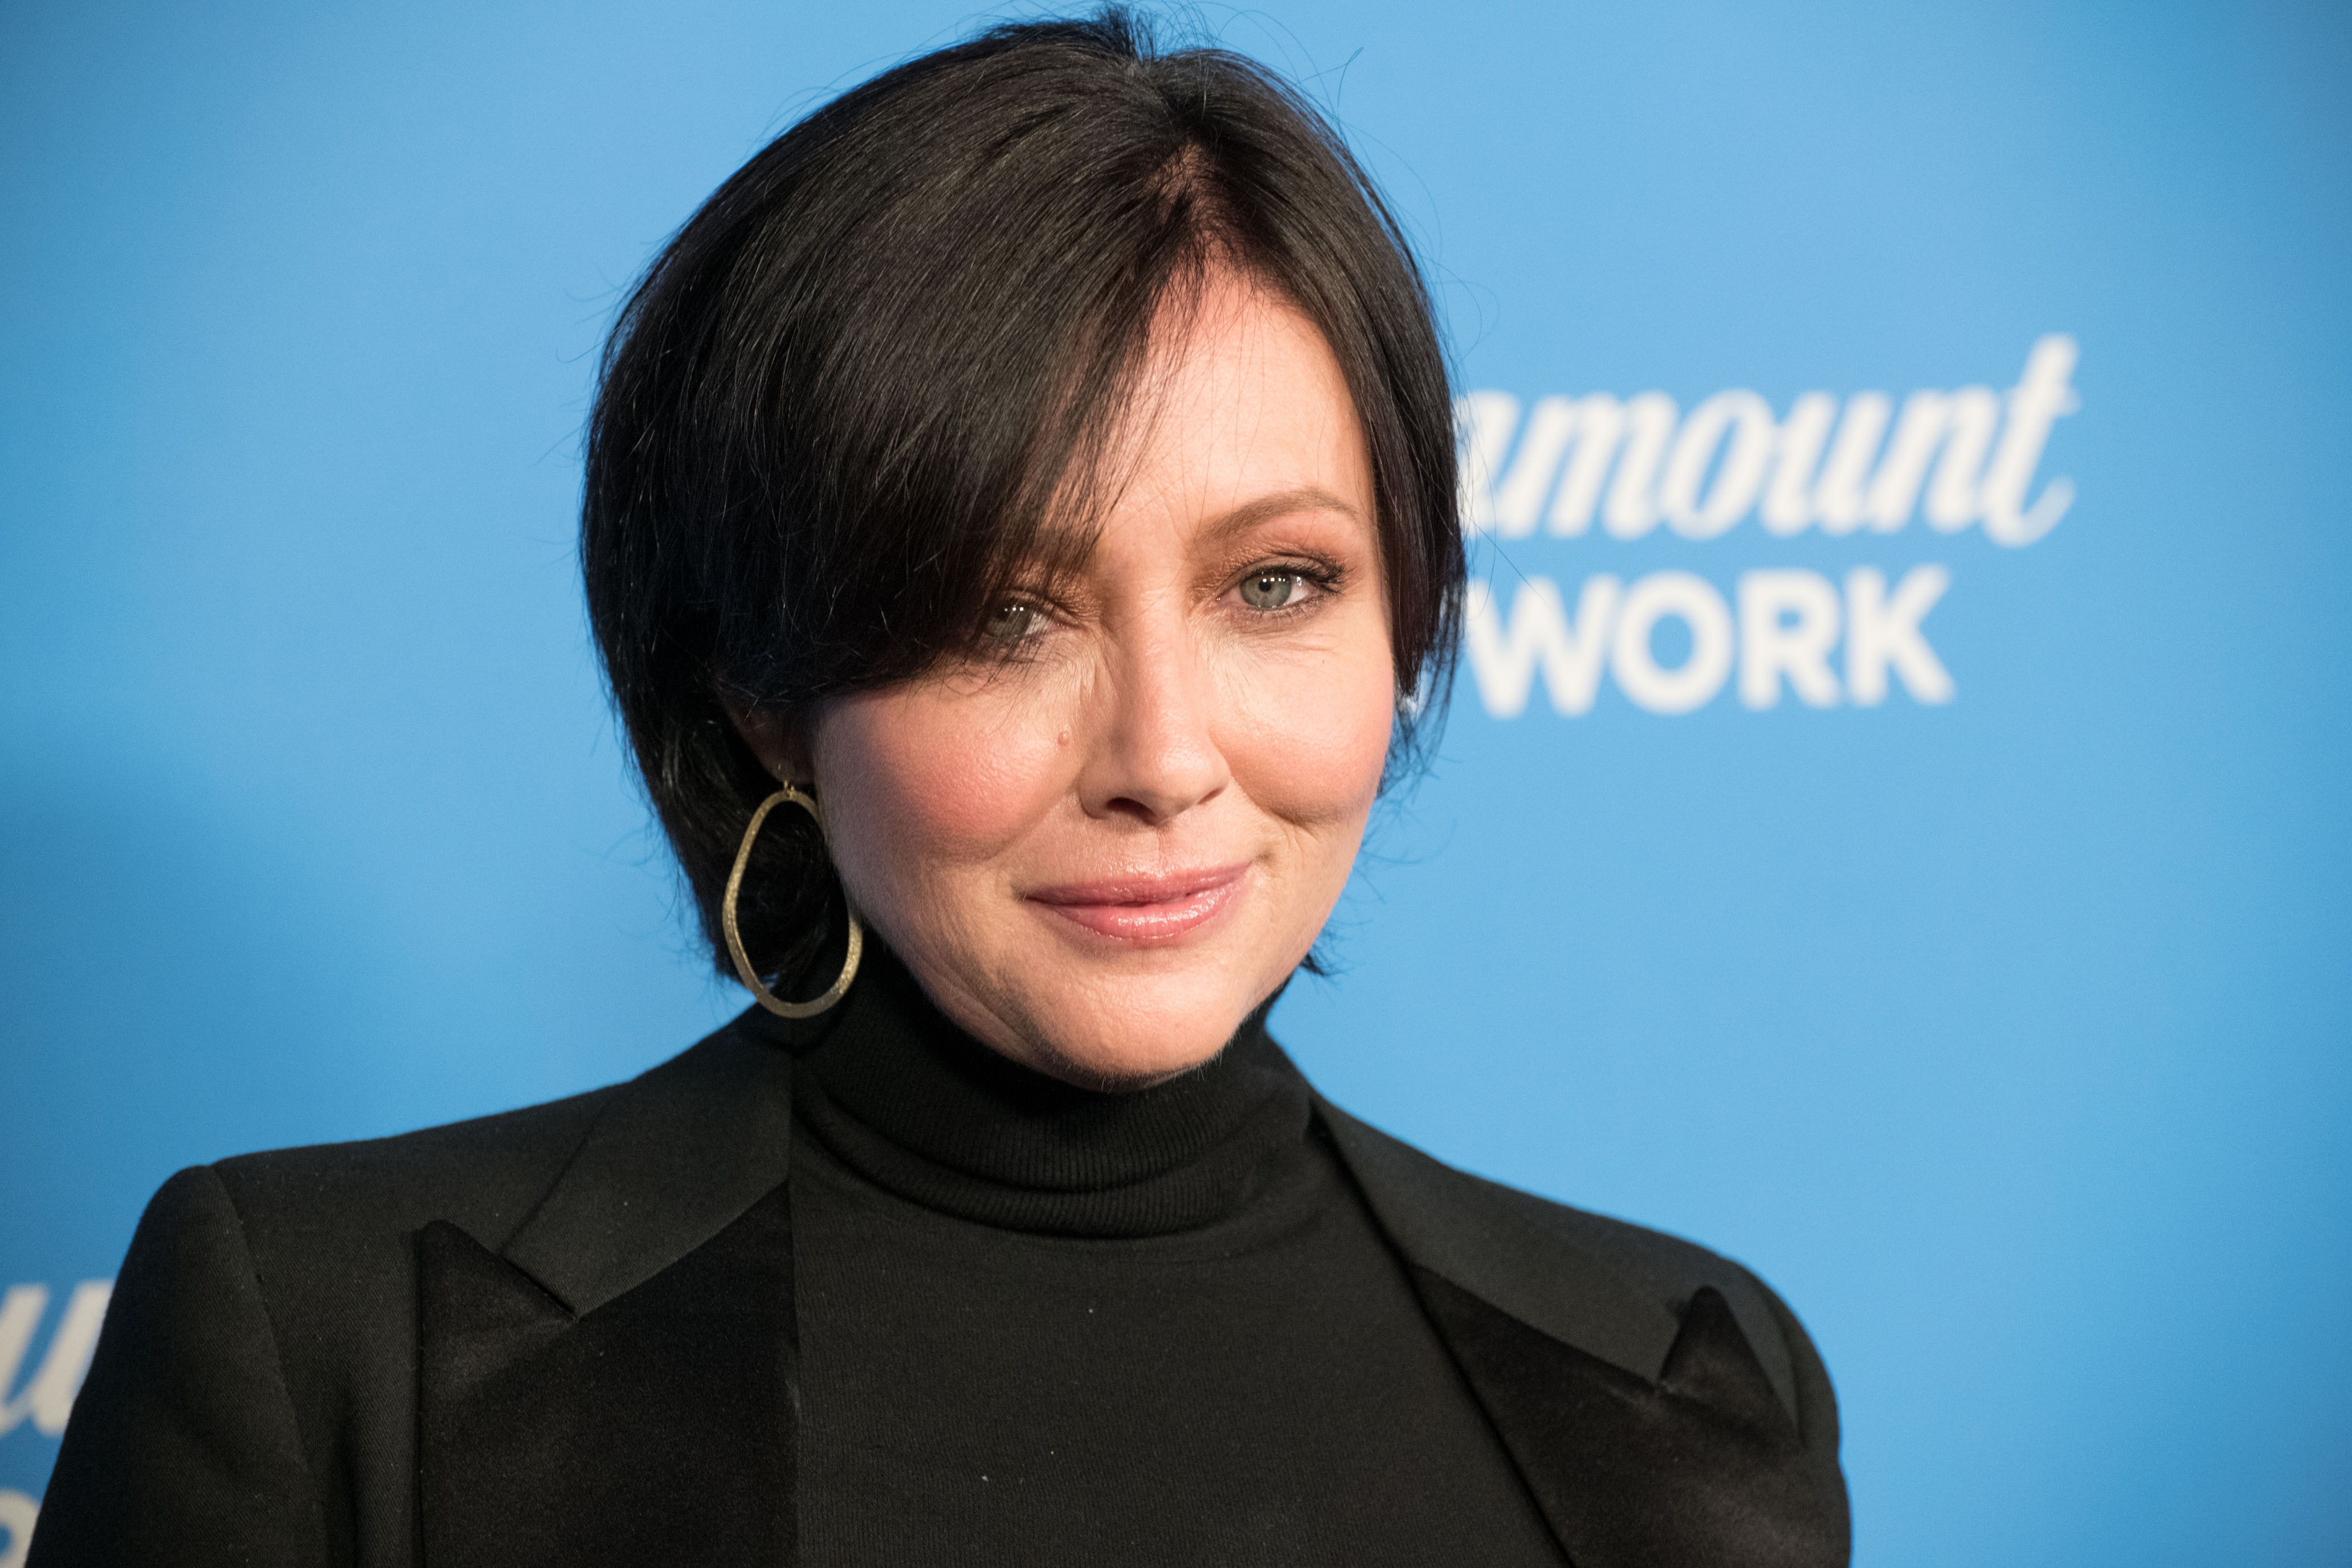 Shannen Doherty's Comments About Luke Perry Show How Much